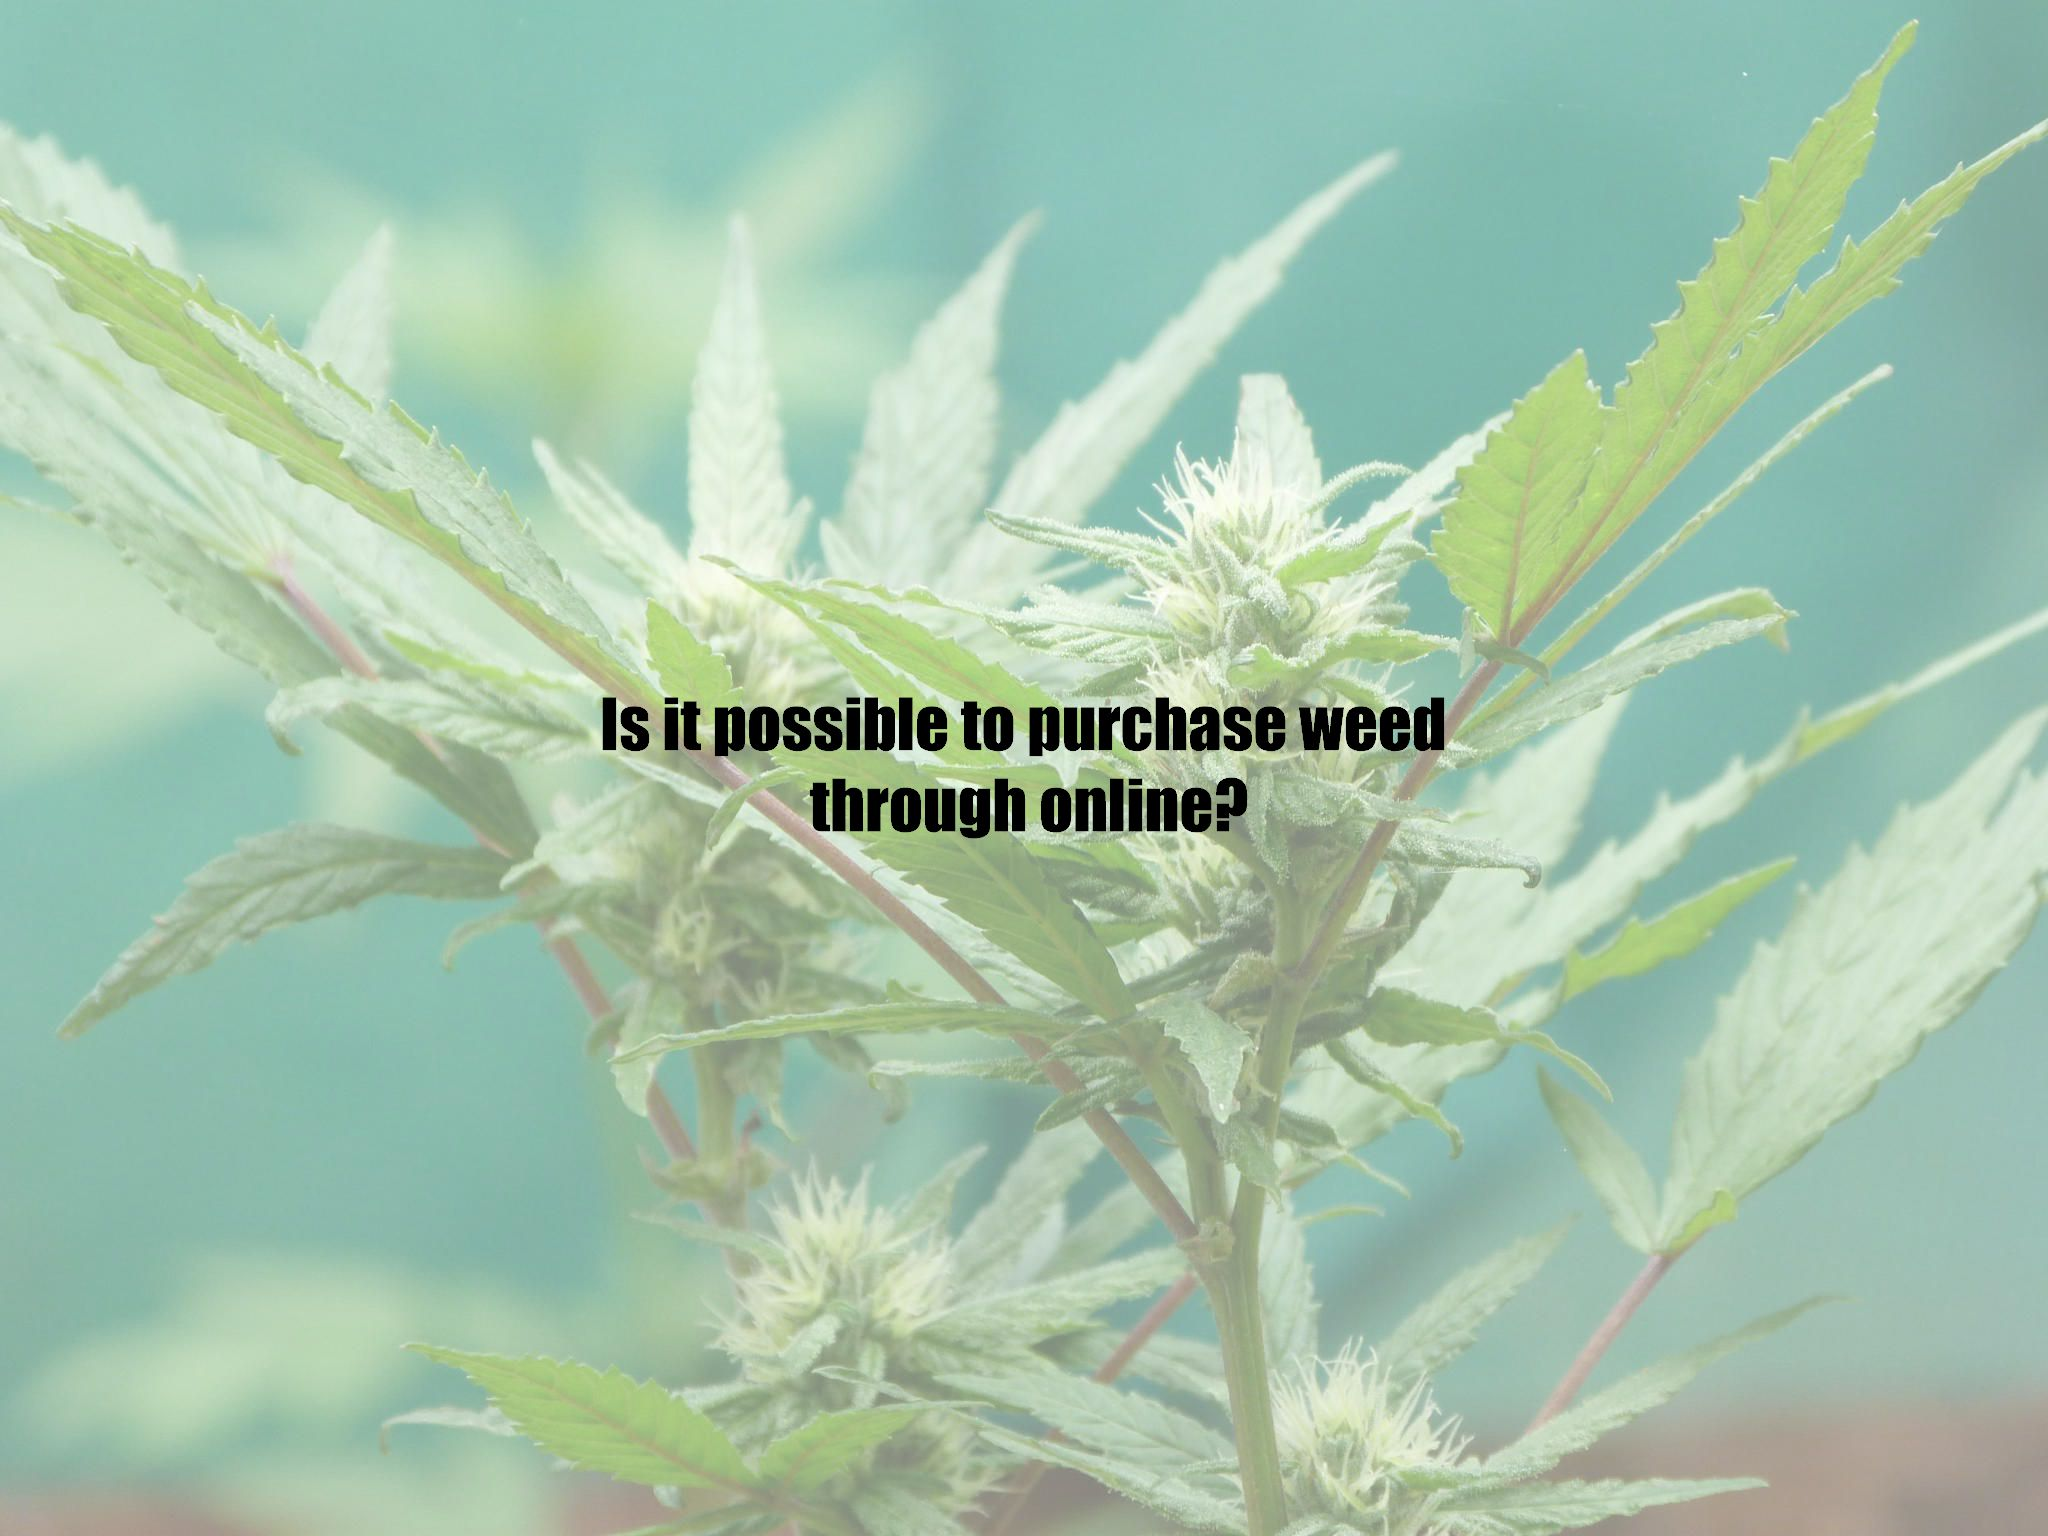 Is it possible to purchase weed through online?